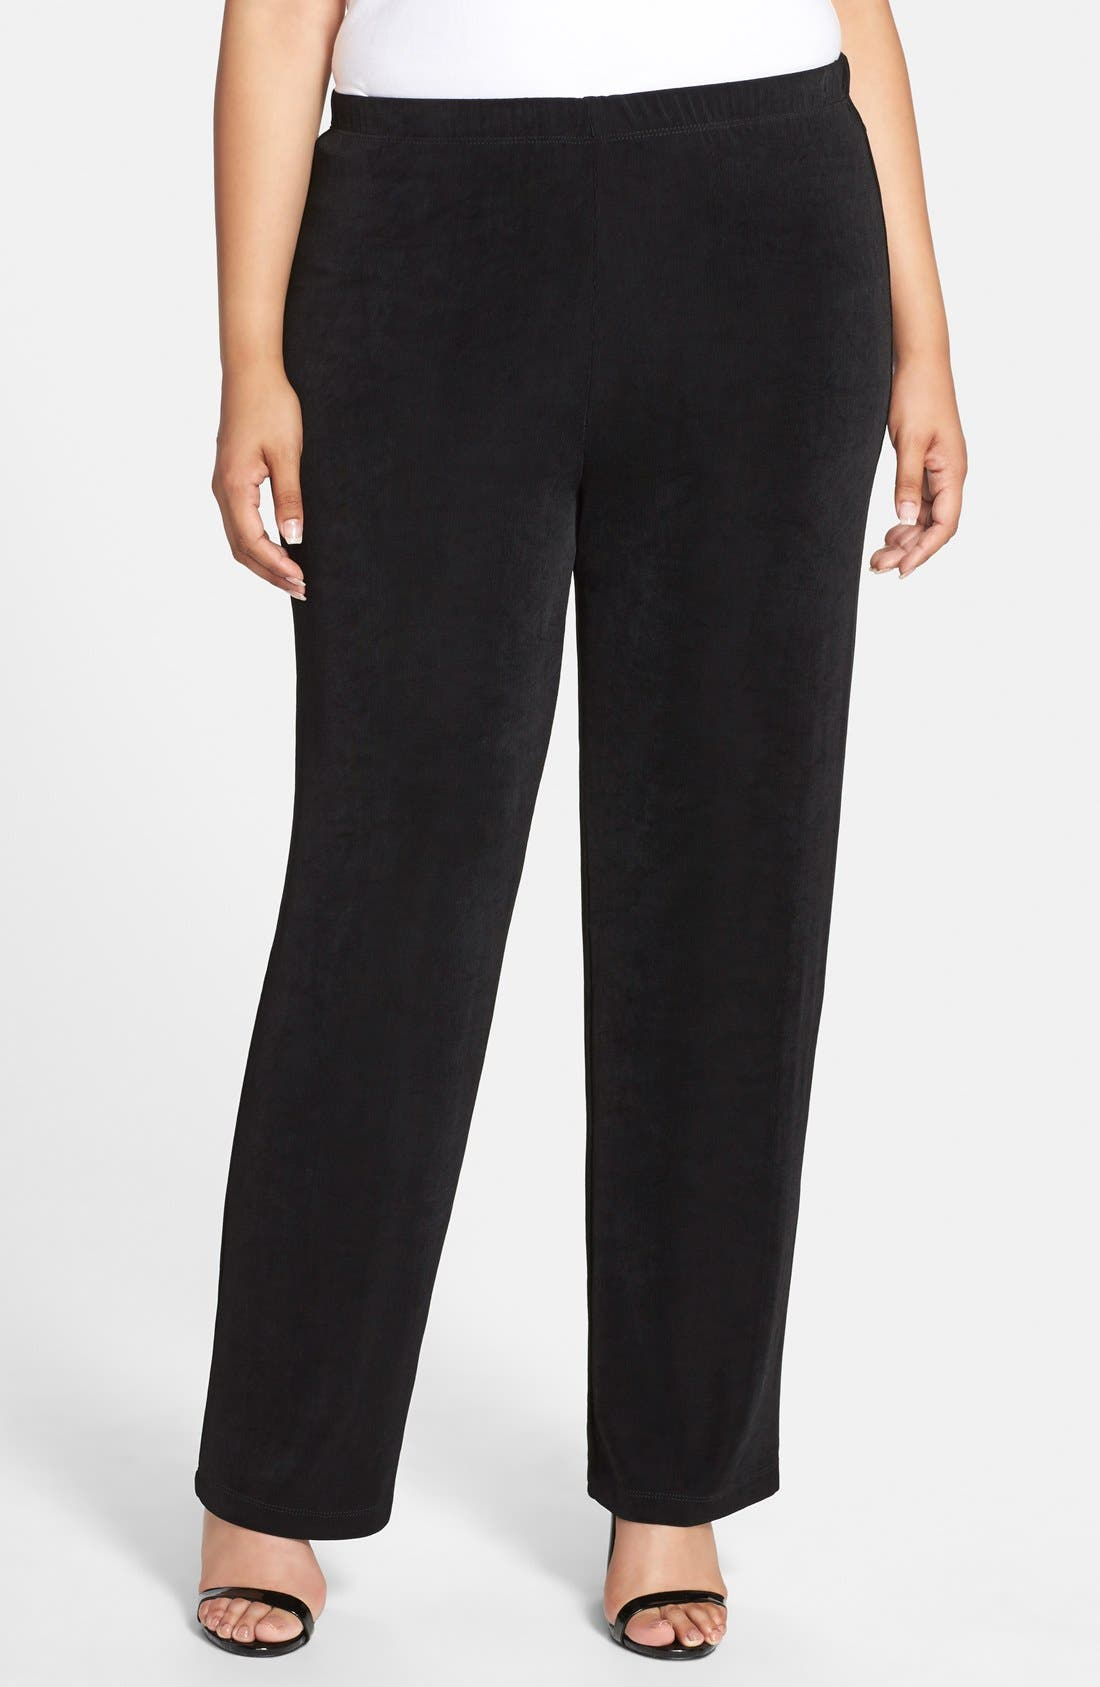 Vikki Vi Pull-On Pants (Plus Size, Petite Plus & Plus Tall)